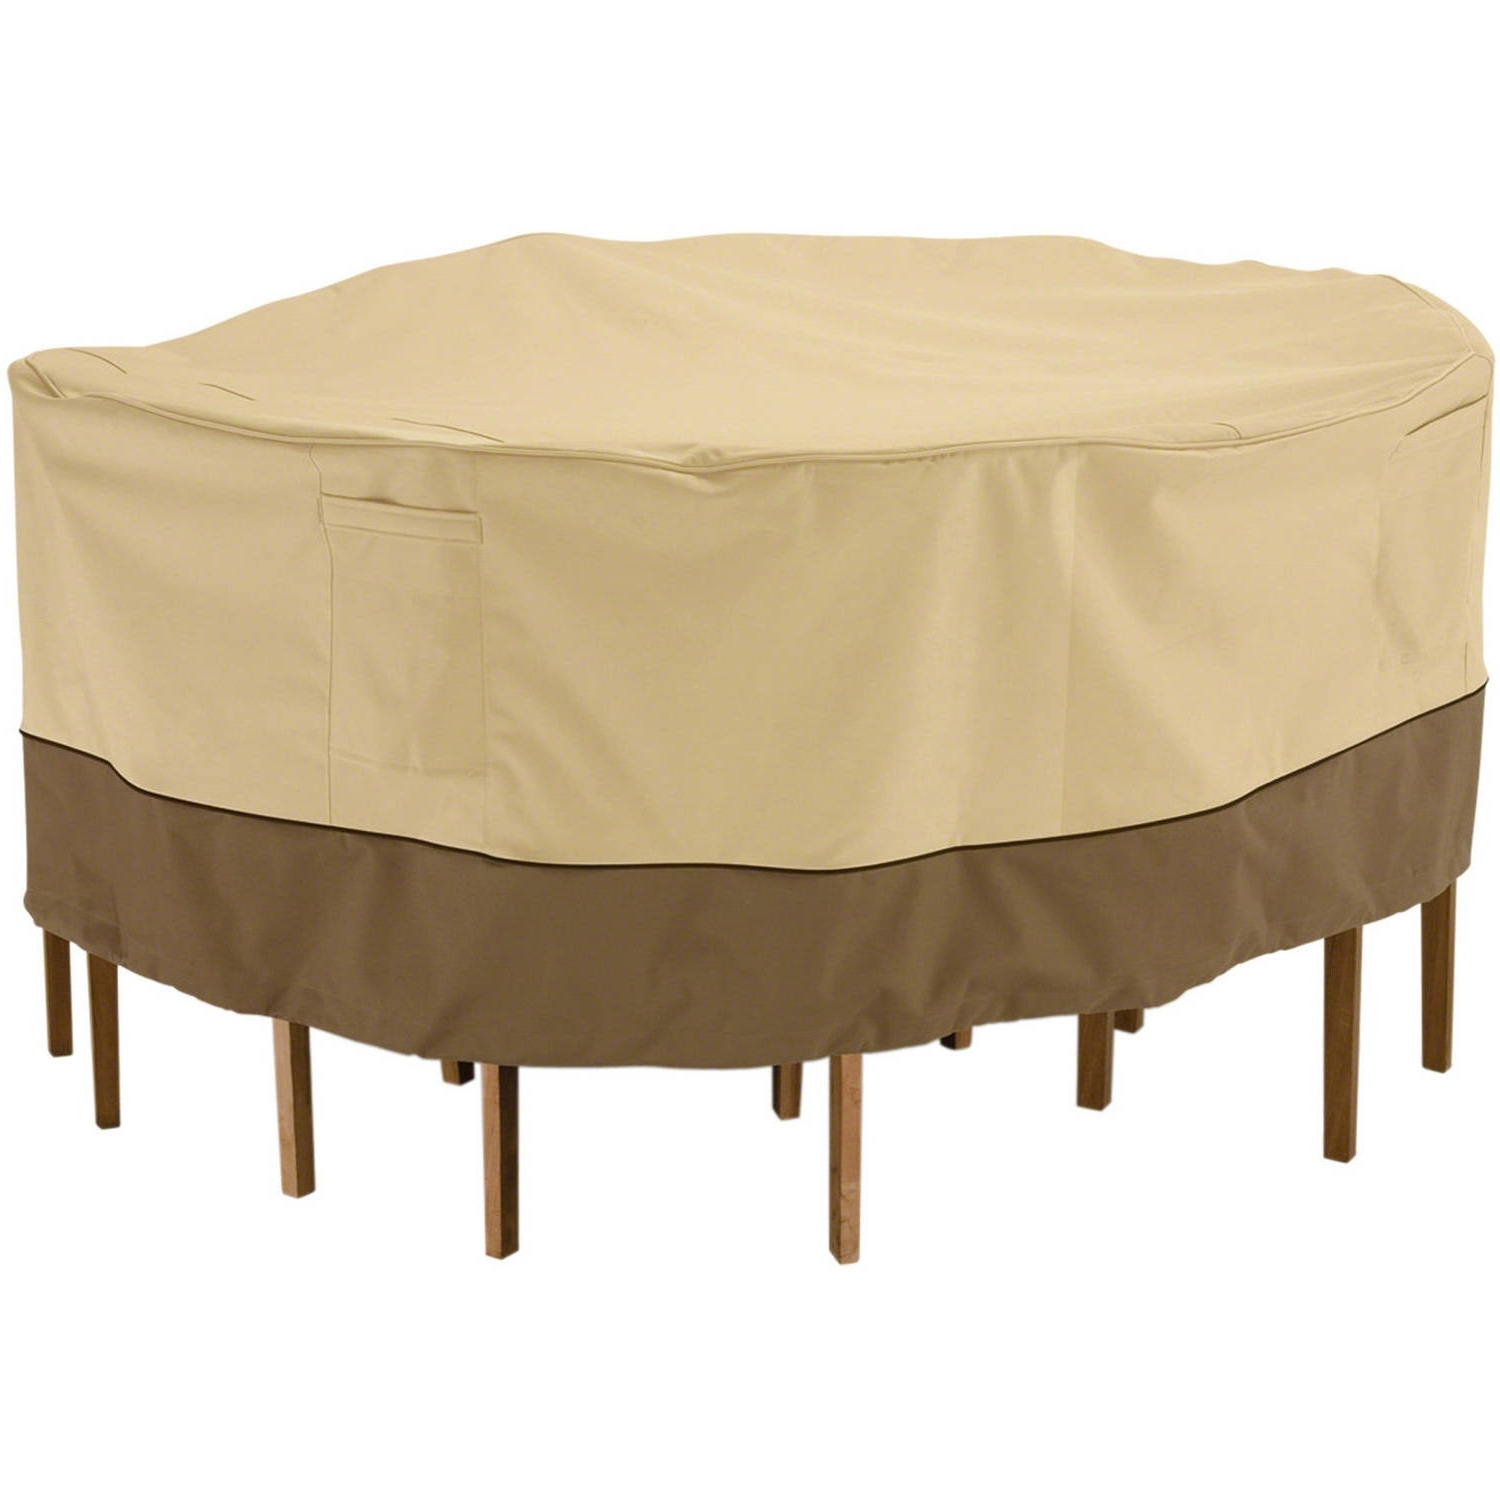 Most Popular Patio Conversation Sets With Covers Inside Outdoor Furniture Covers (View 20 of 20)